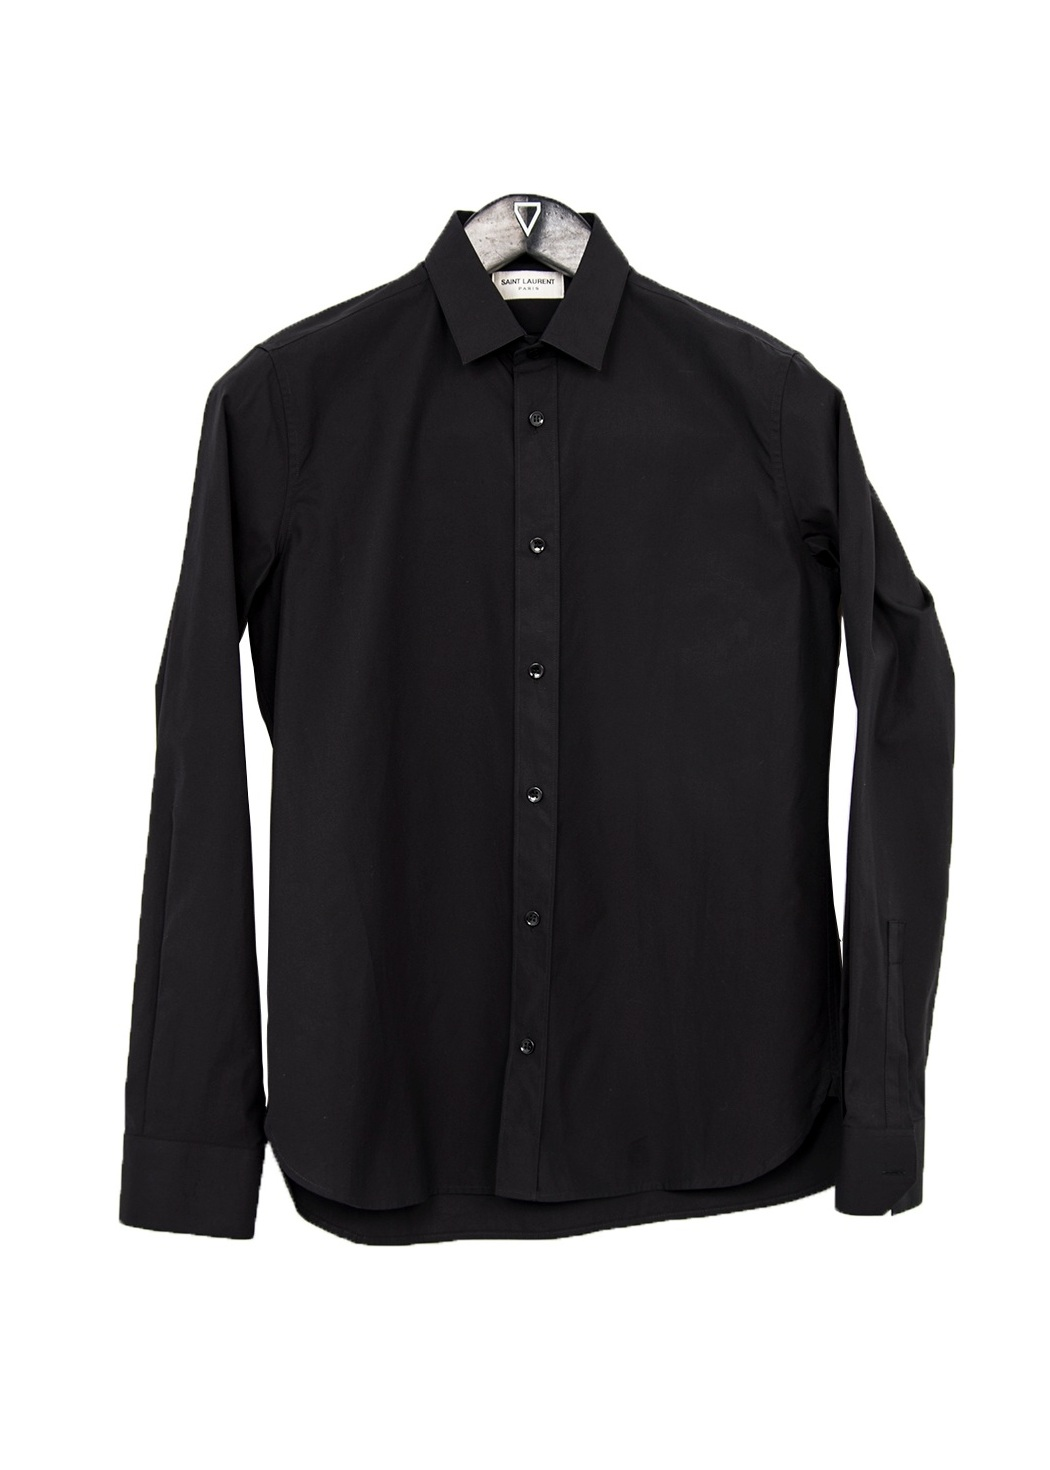 "15 1/2 SAINT LAURENT SHIRT ""SAINT-SH03"""